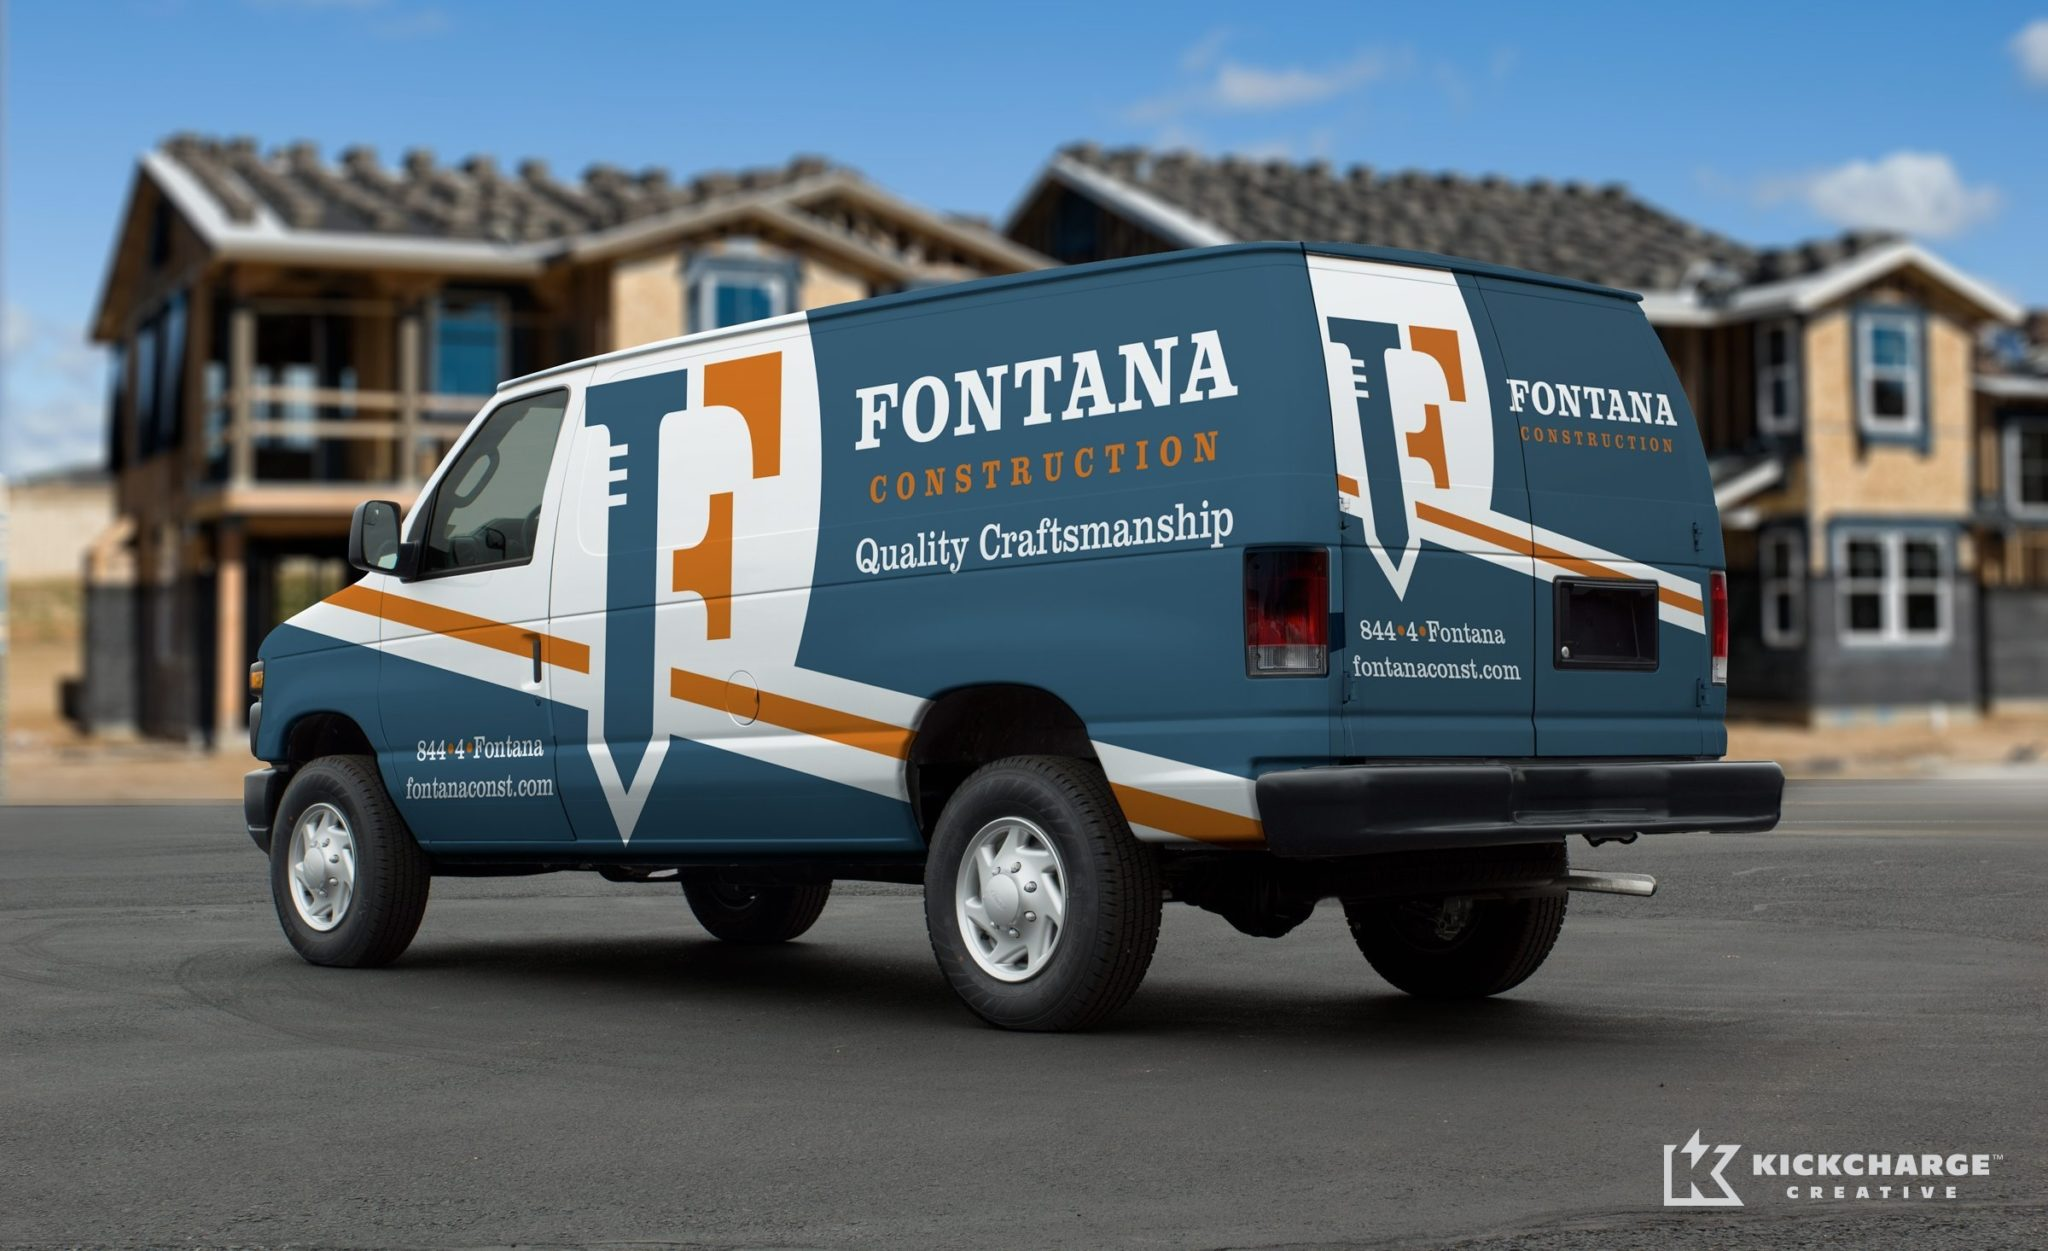 Fontana Construction vehicle wrap design for a full-service construction firm located in Staten Island, New York.